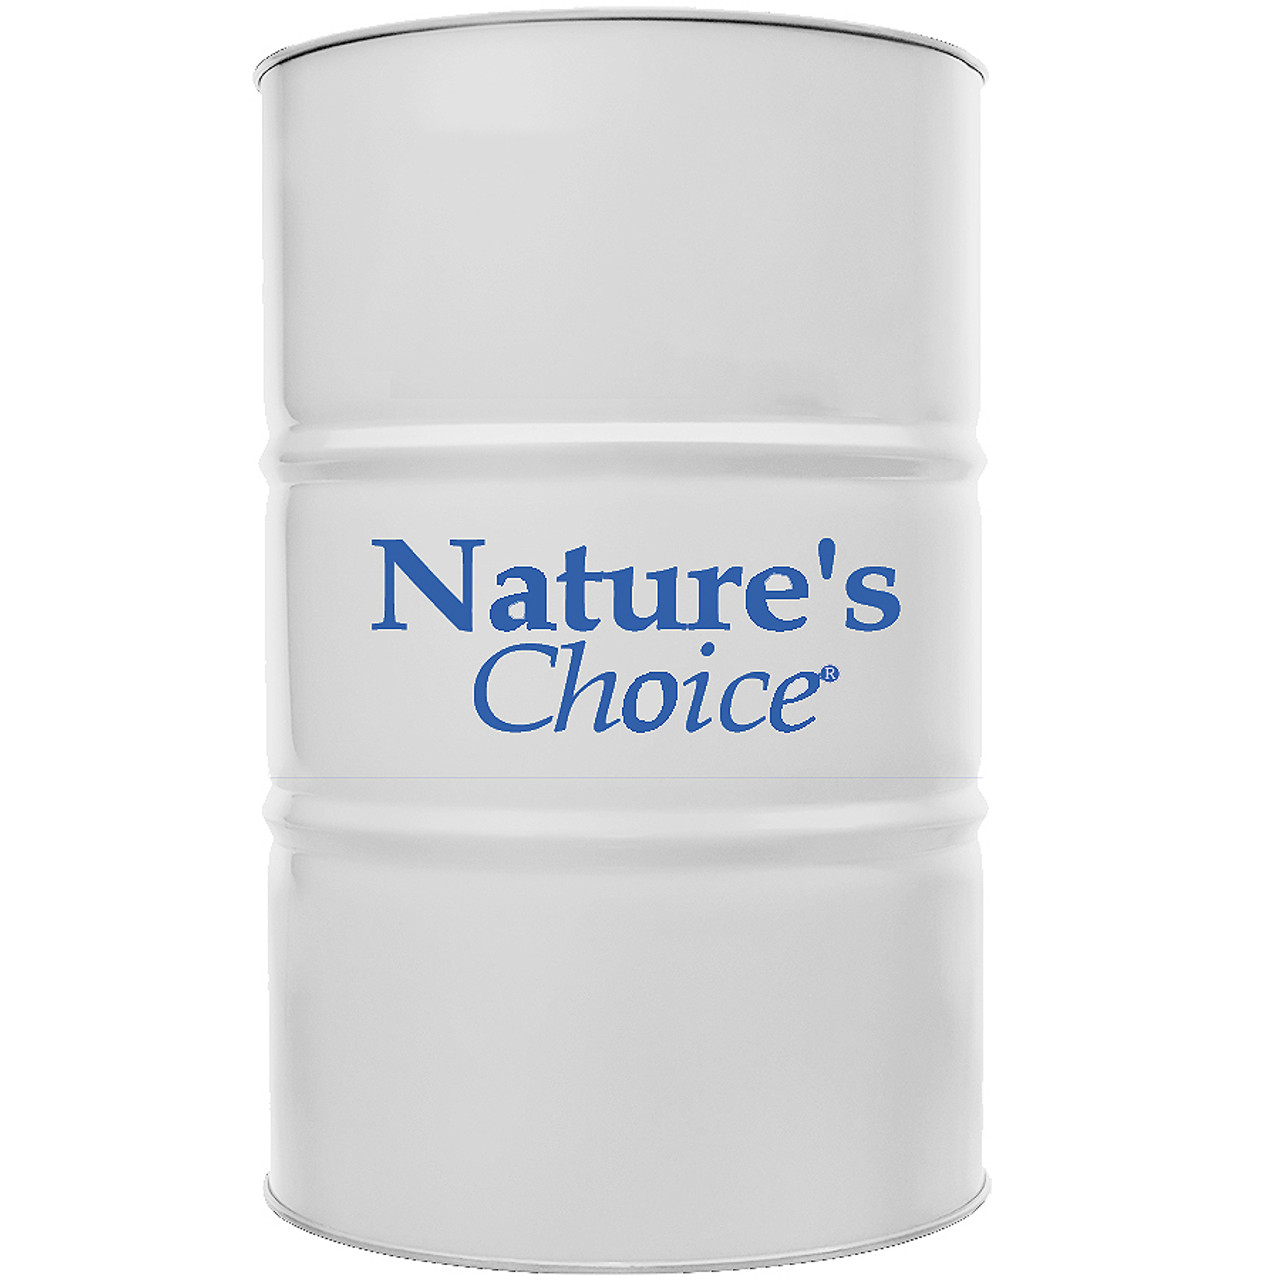 Nature's Choice Re-Refined AW 32